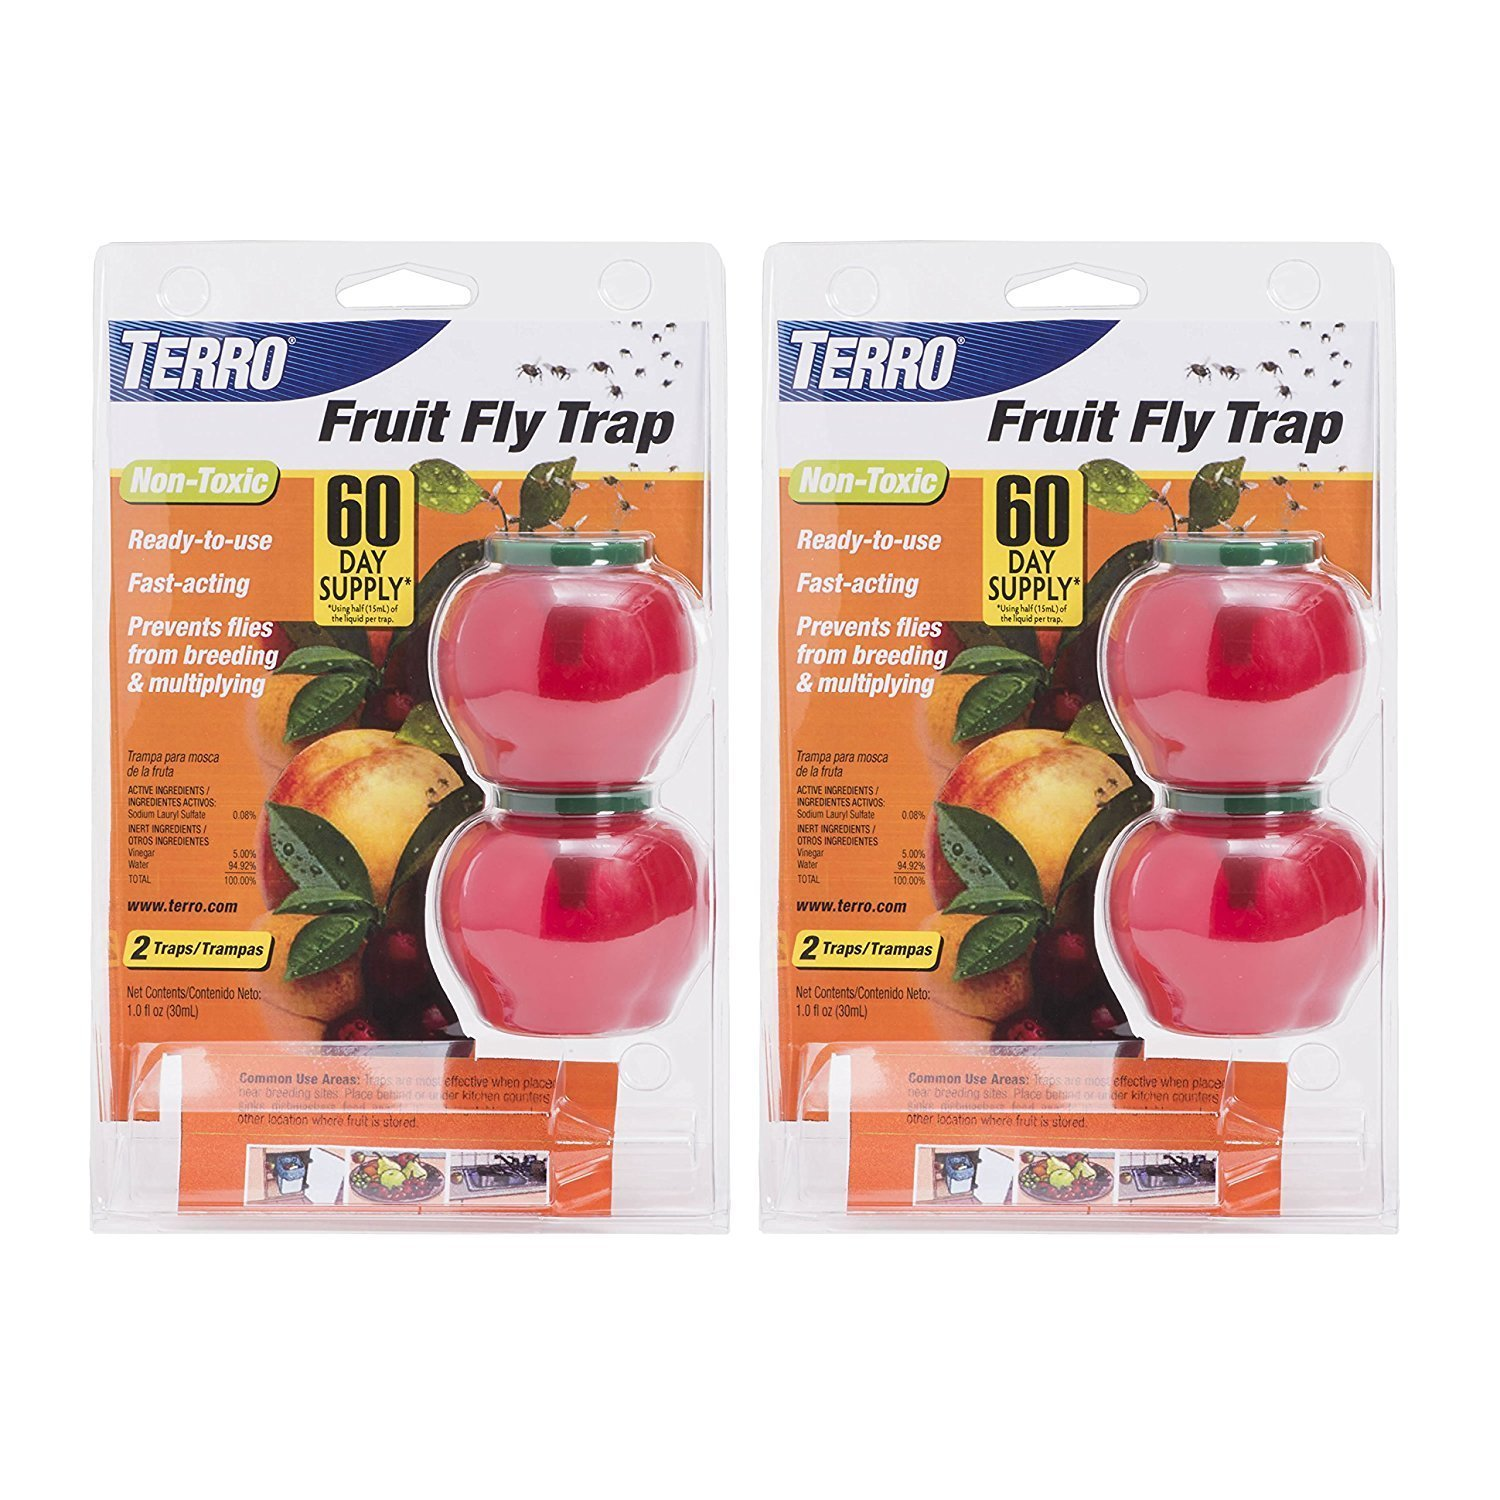 TERRO Fruit Fly Trap T2502 (2 Pack of 2) - Includes the SJ pest guide eBook 2017